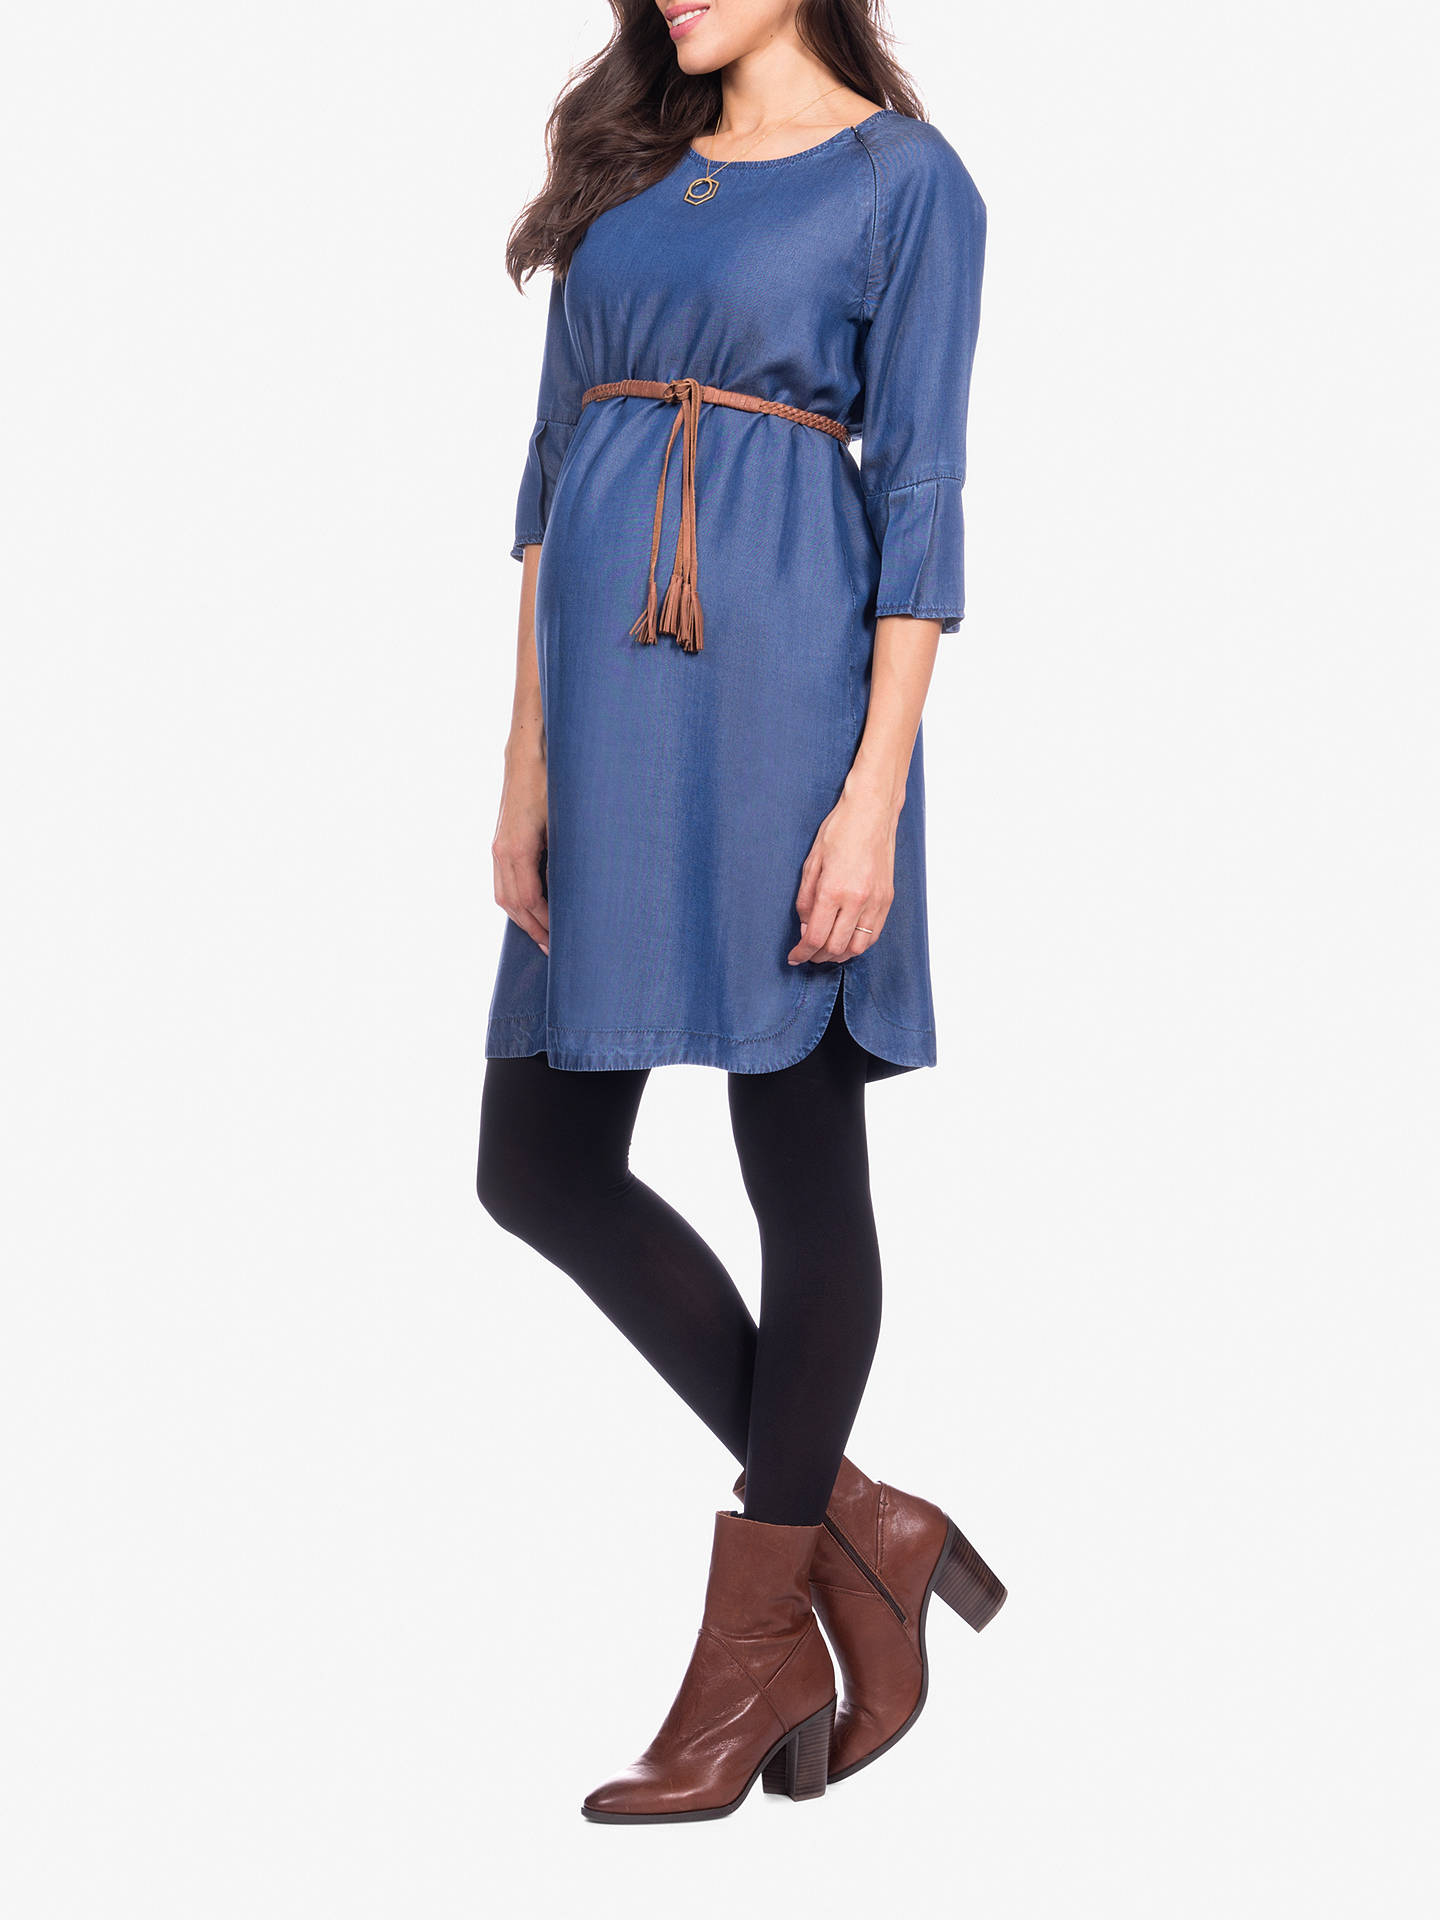 c043a0f1a03c2 Buy Séraphine Bernice Chambray Maternity Dress, Blue, 10 Online at  johnlewis.com ...